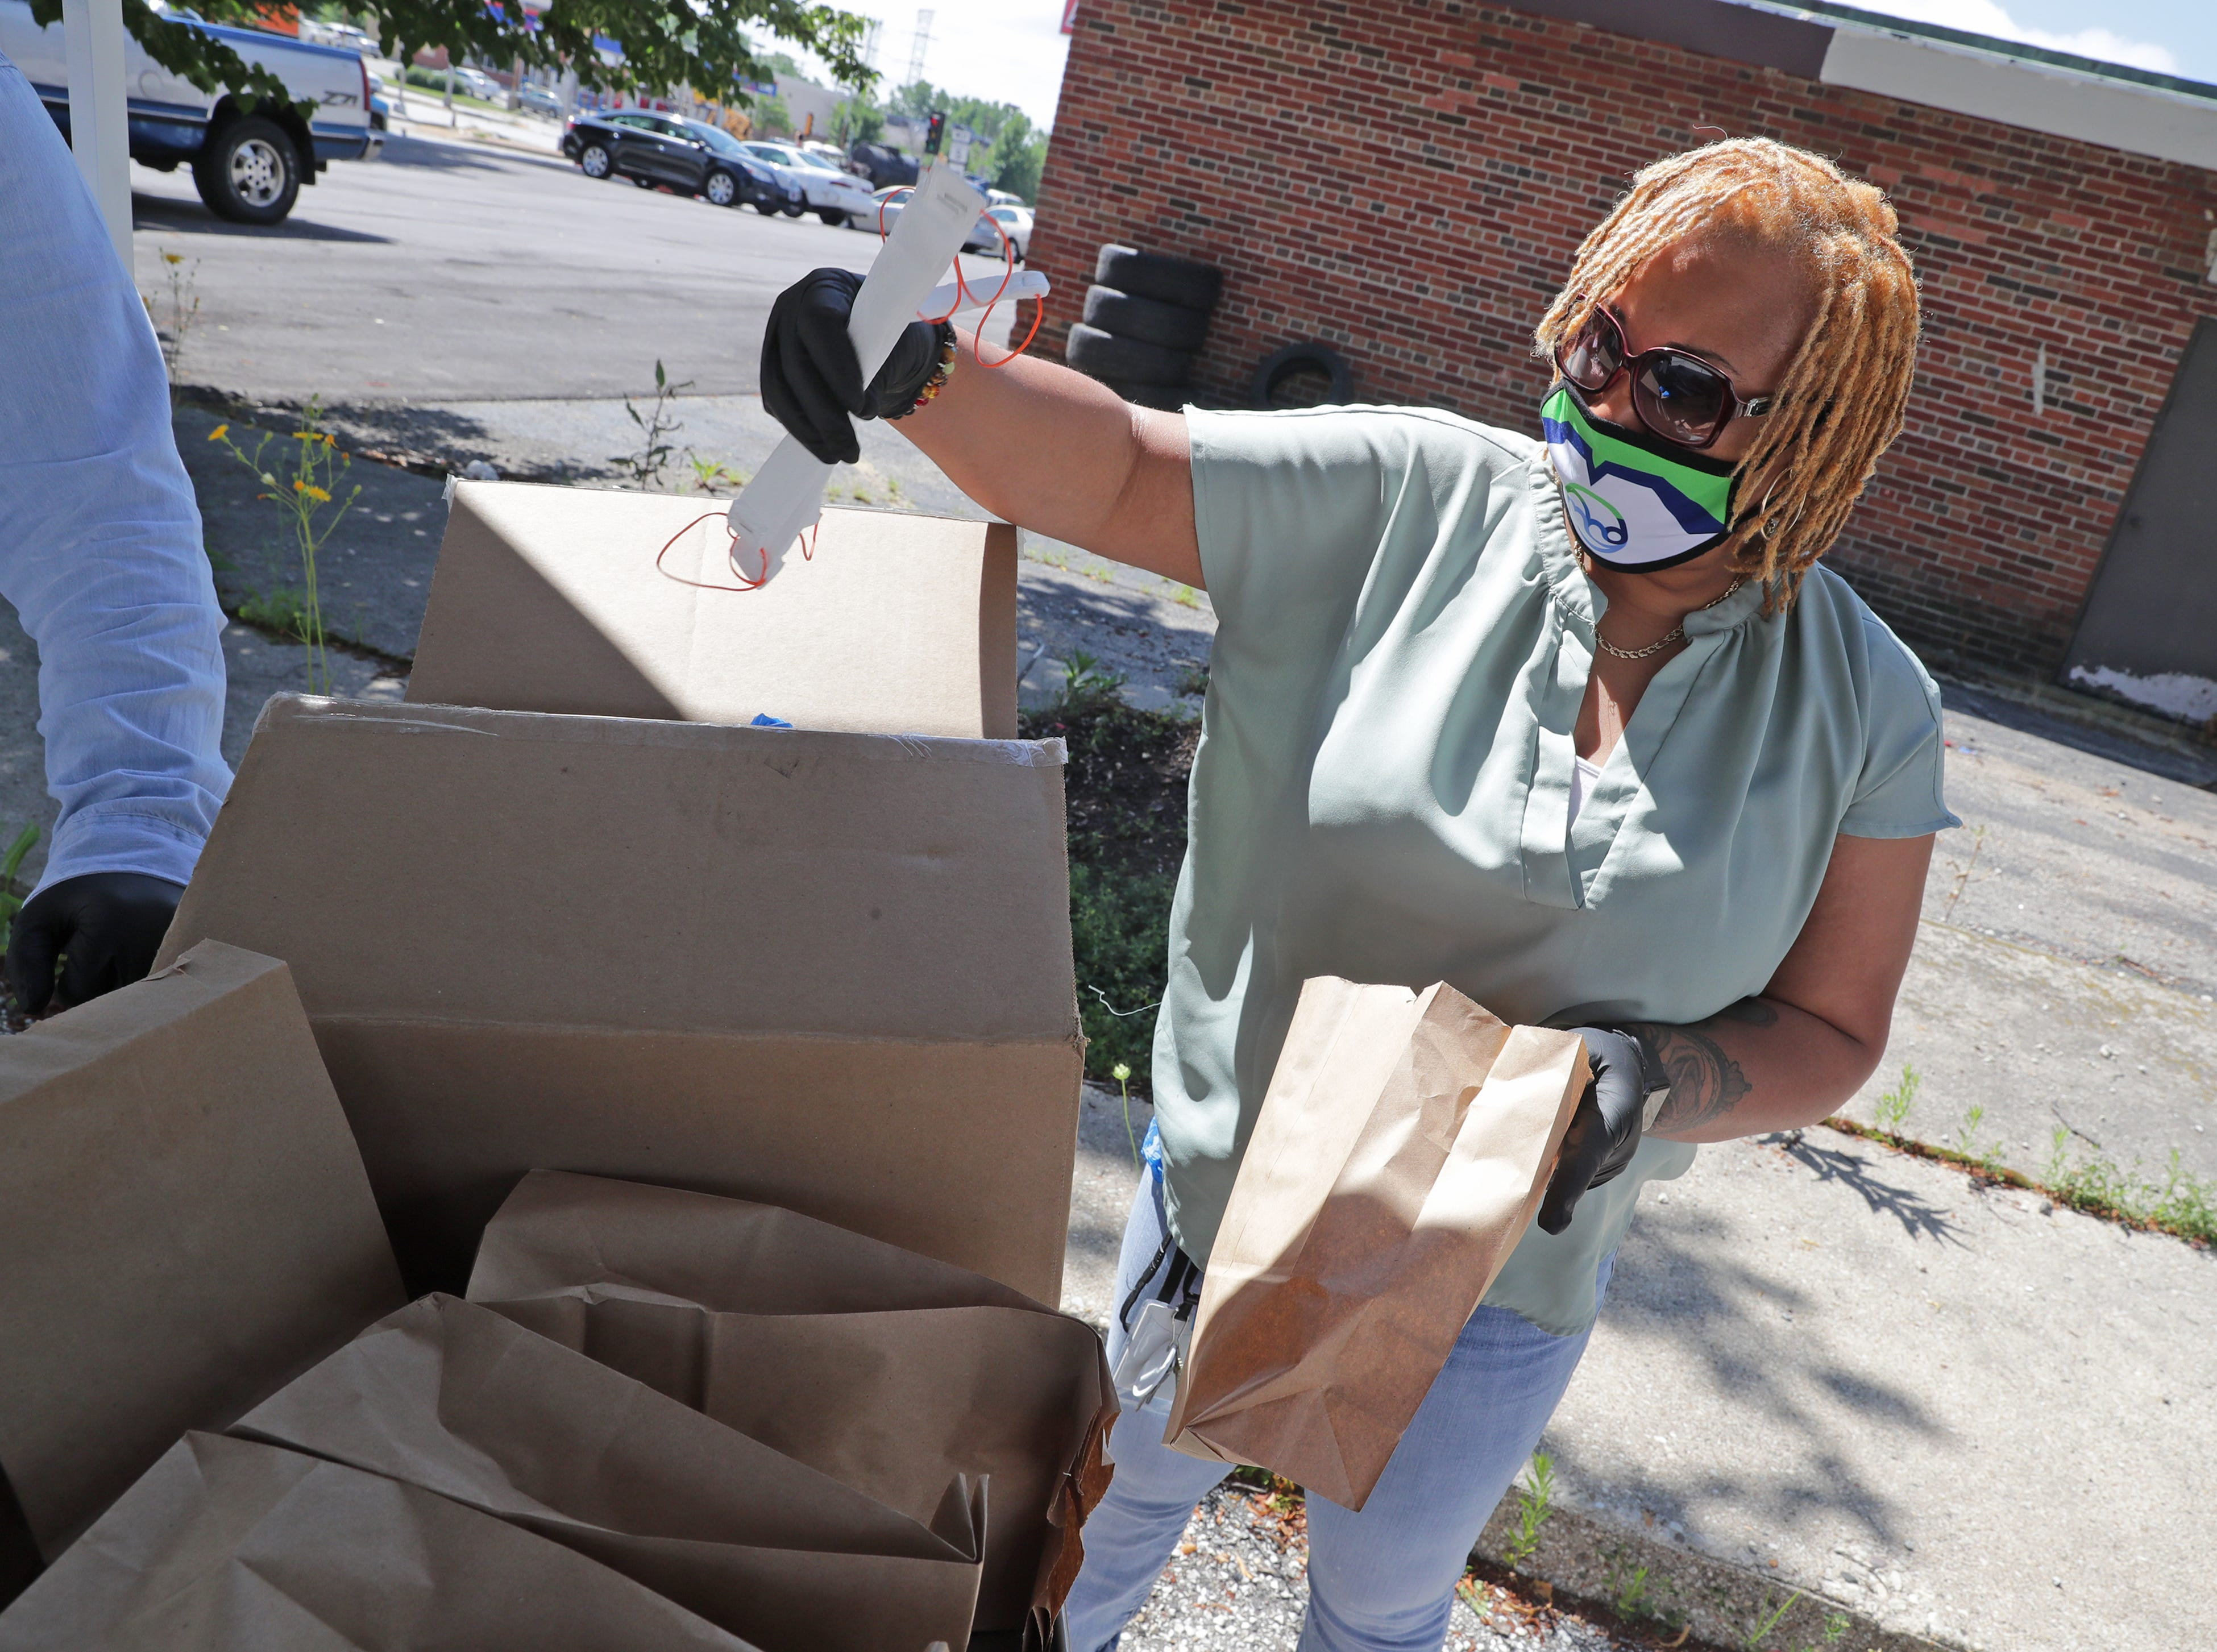 Erica Swan, with the Milwaukee Health Department, prepares bags with face masks before handing them out at the City Of Milwaukee Health Department-Northwest Health Center at 7630 W. Mill Road Milwaukee on July 16.